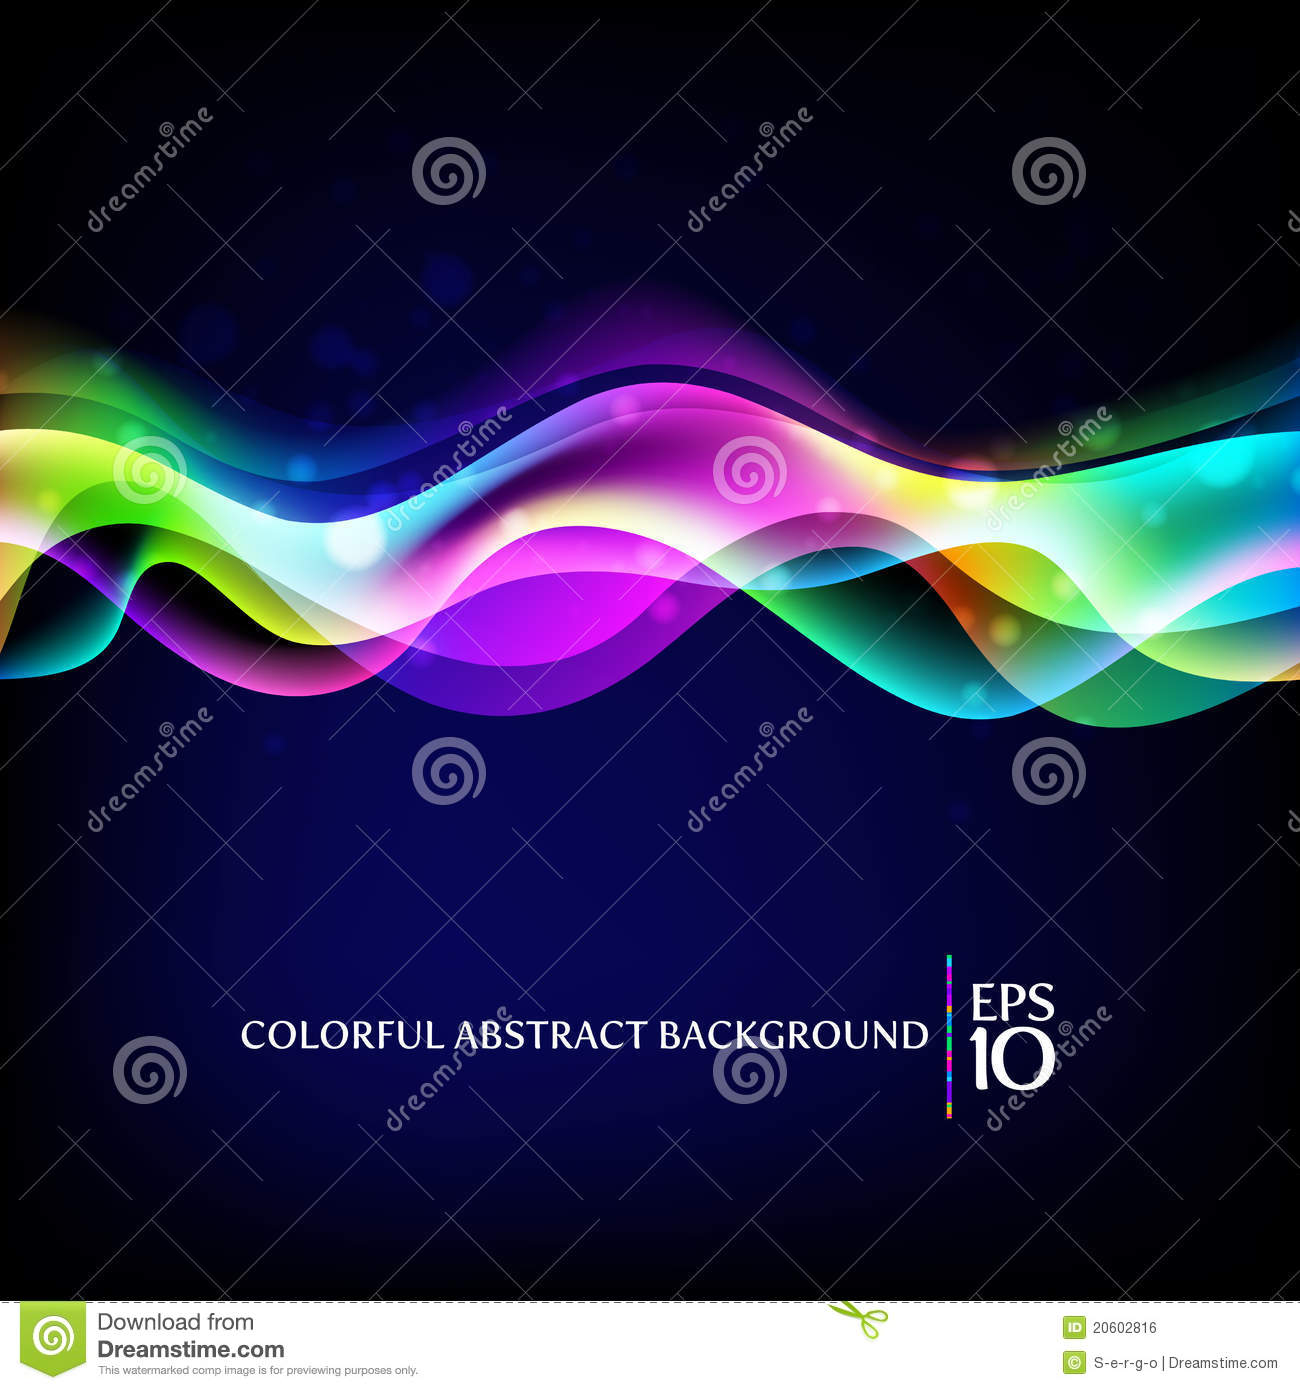 Abstract background - colorful waves